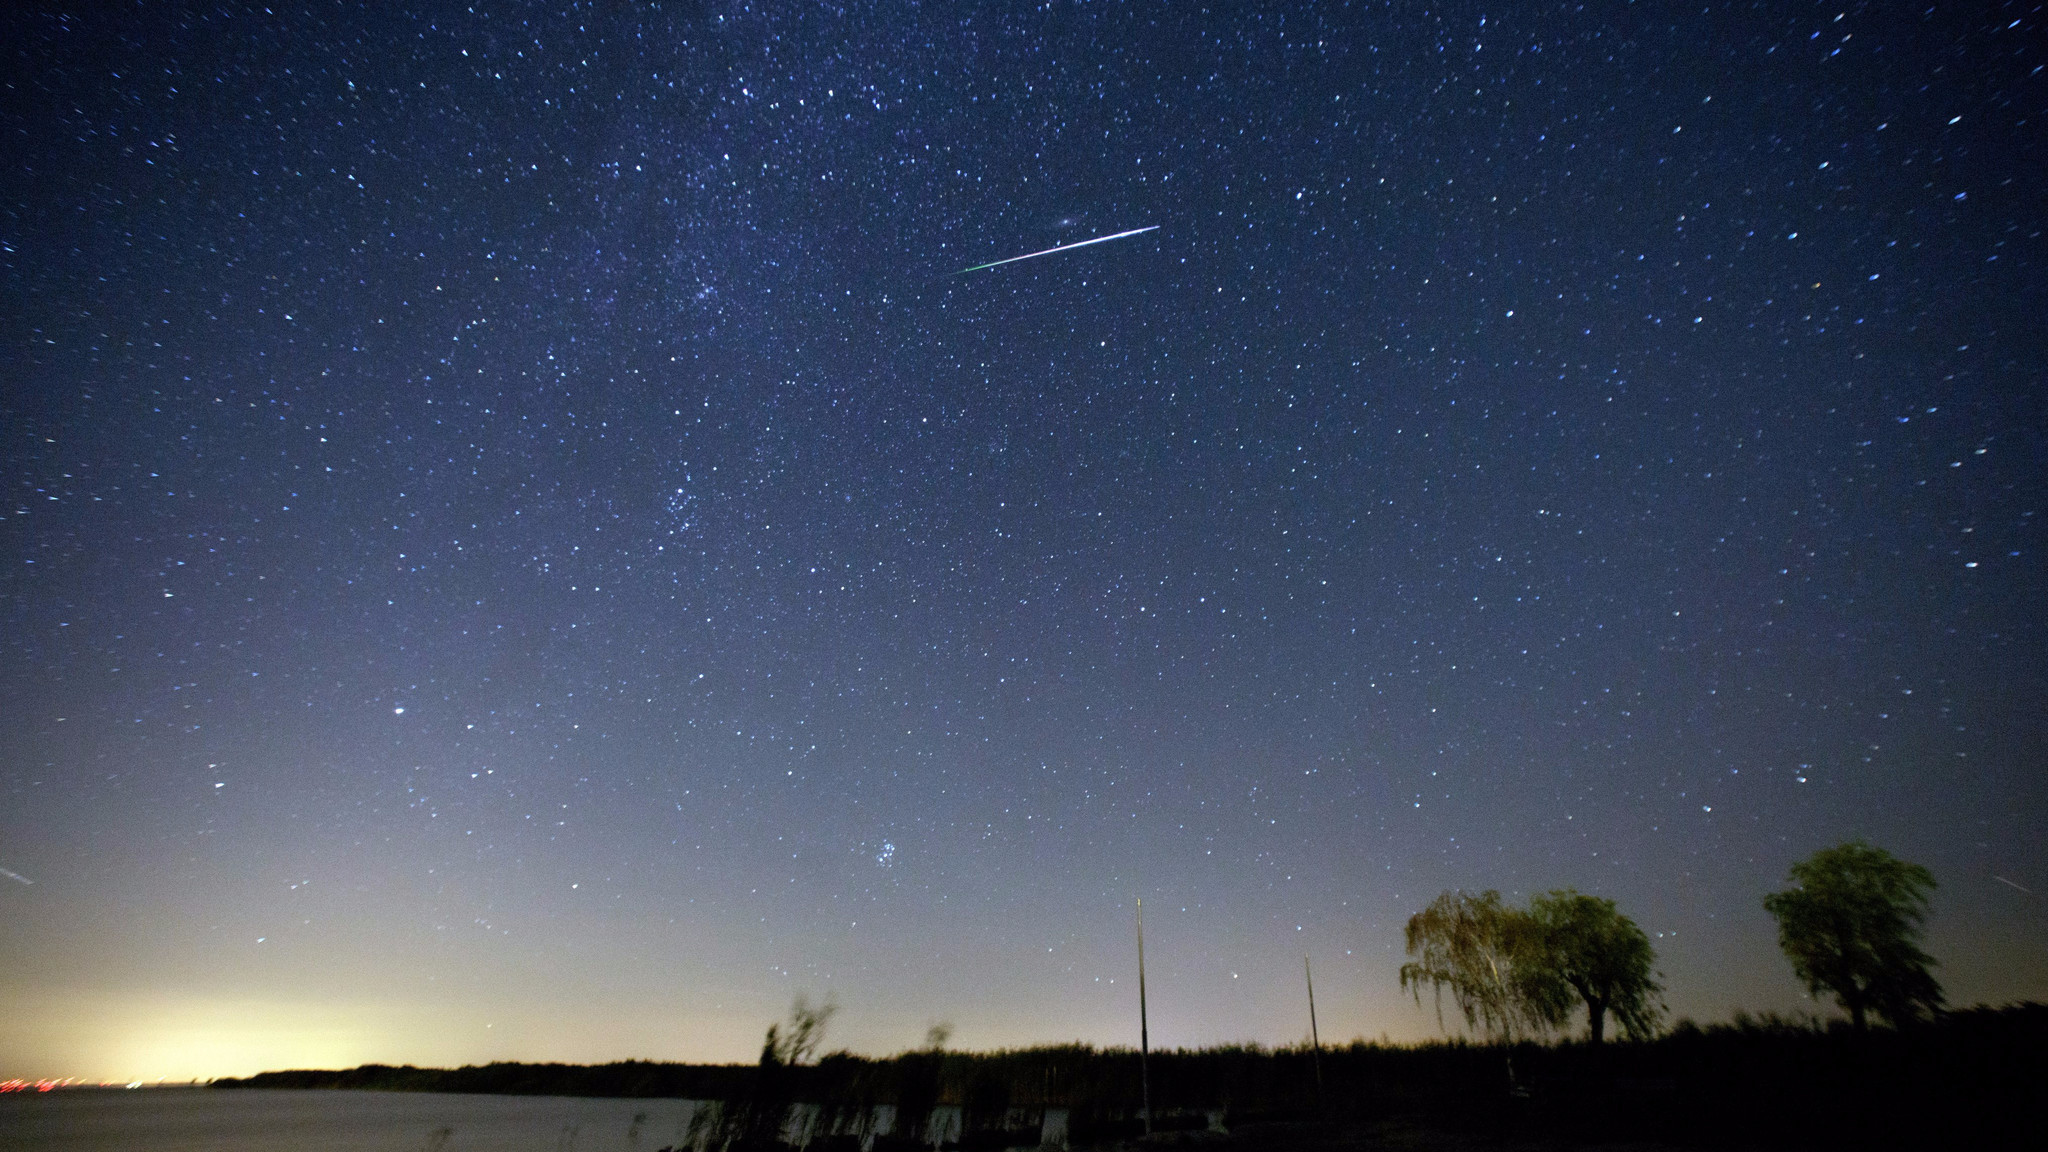 Perseid meteor shower 2016 offers a once in a decade ...